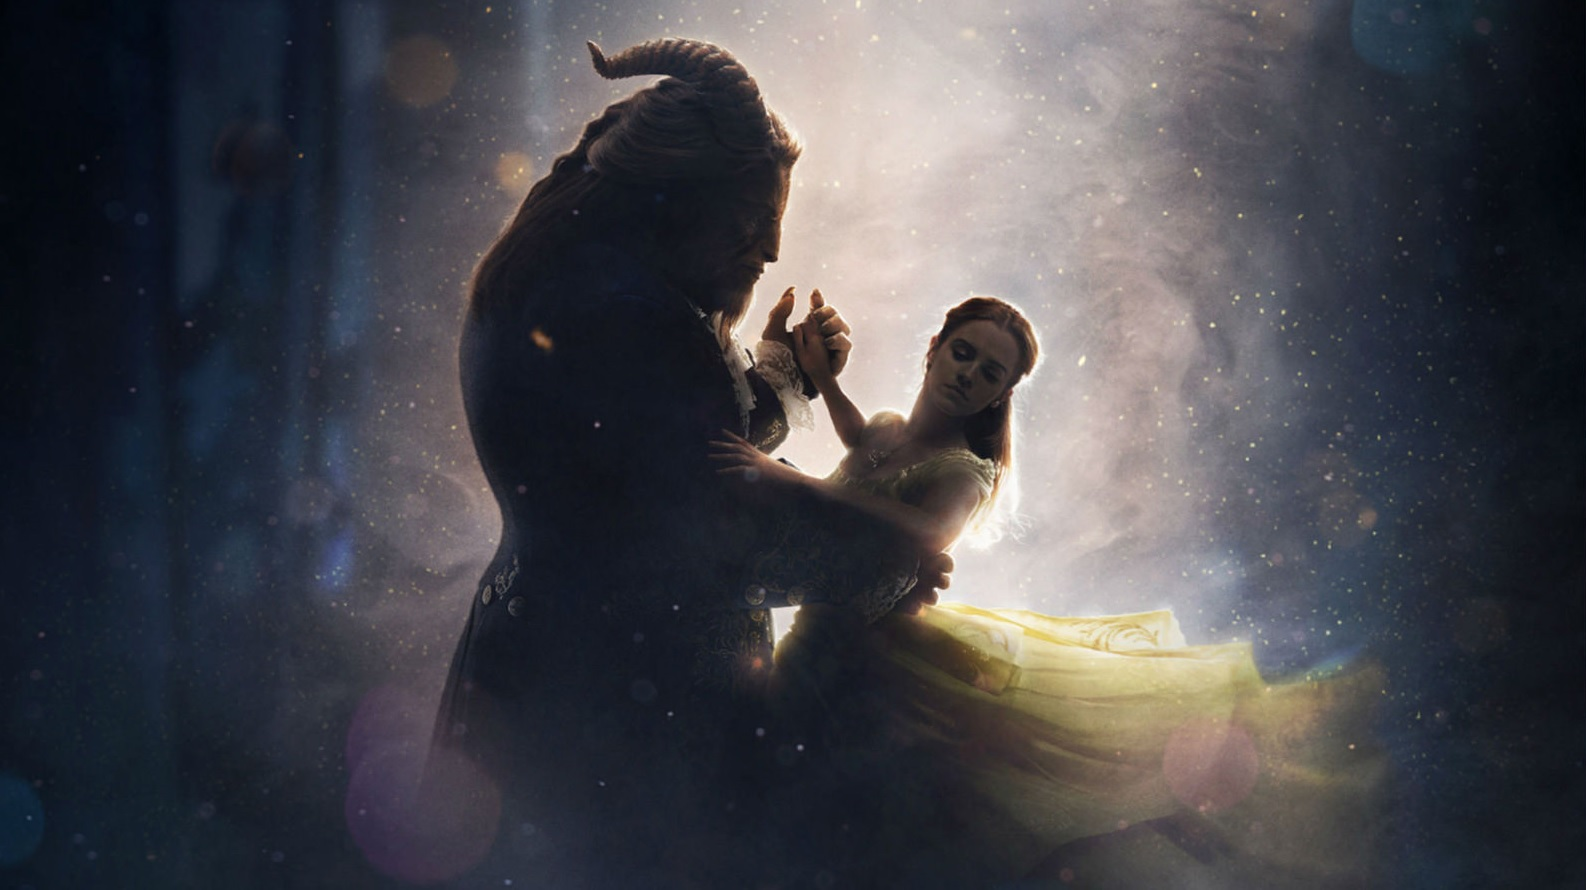 Final Look at 'Beauty and the Beast' is Trail as Old as Time